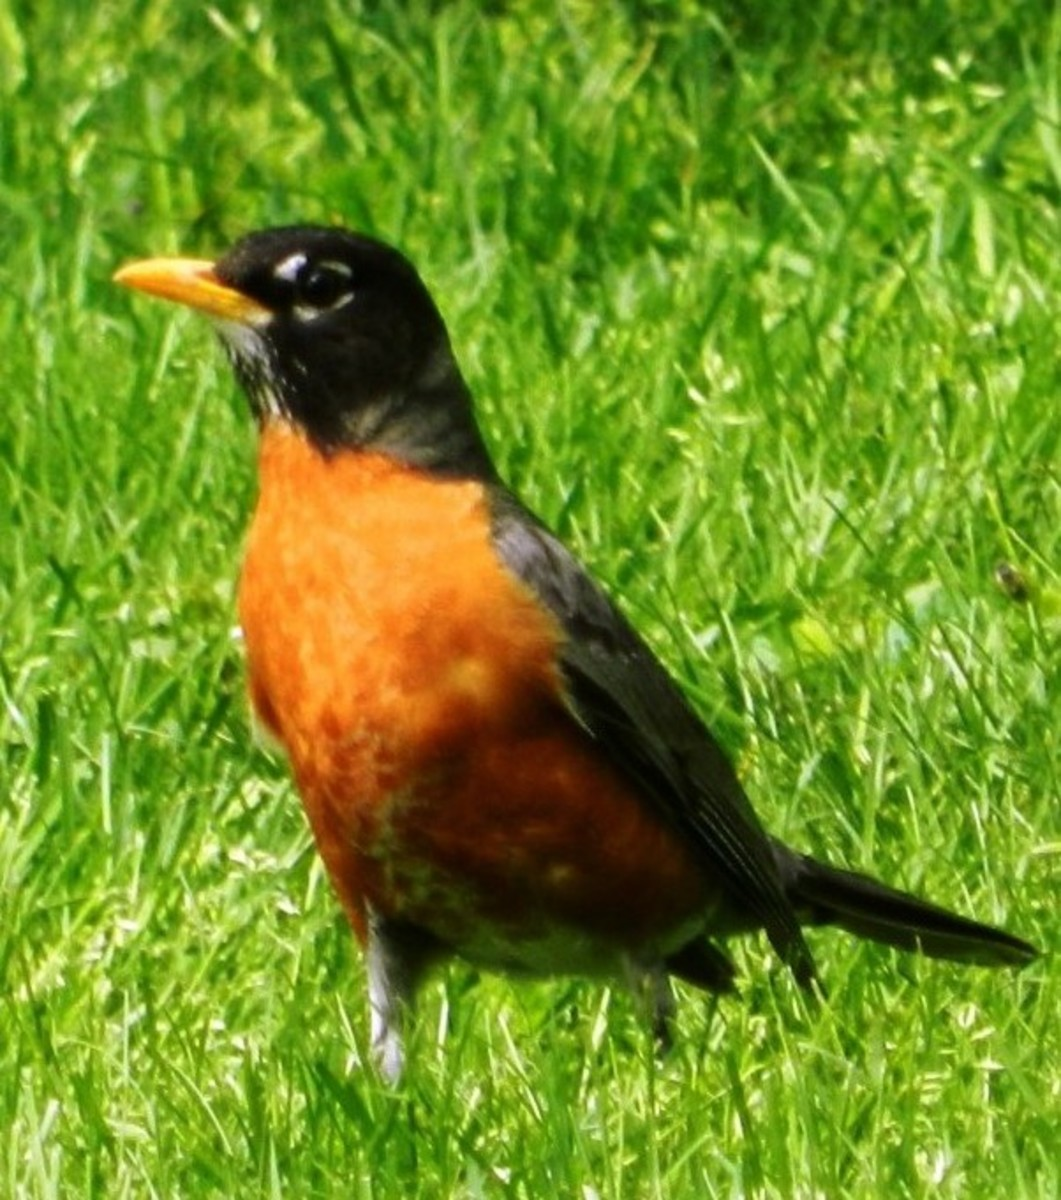 The Robin is a migratory bird common throughout the US and Canada.